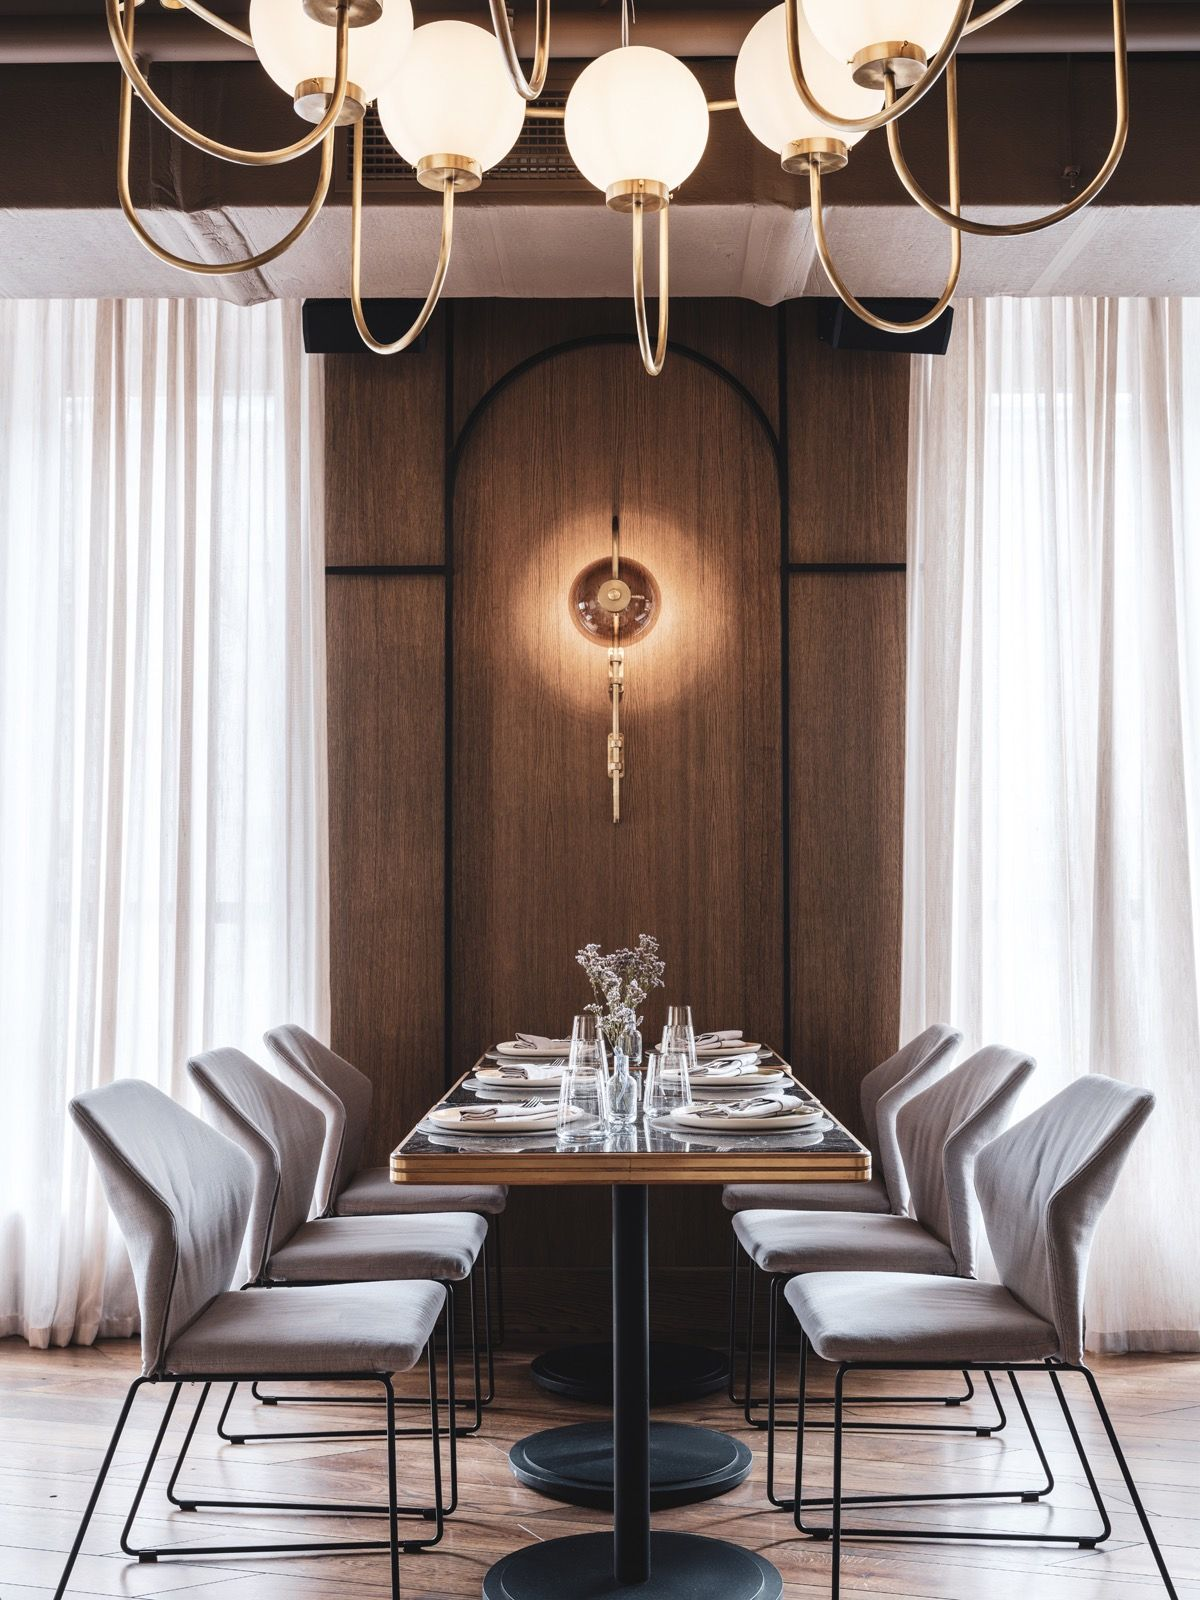 Asthetique Creates Dreamy Design Concept For The Y Restaurant In Moscow Private Dining Room Interior Design